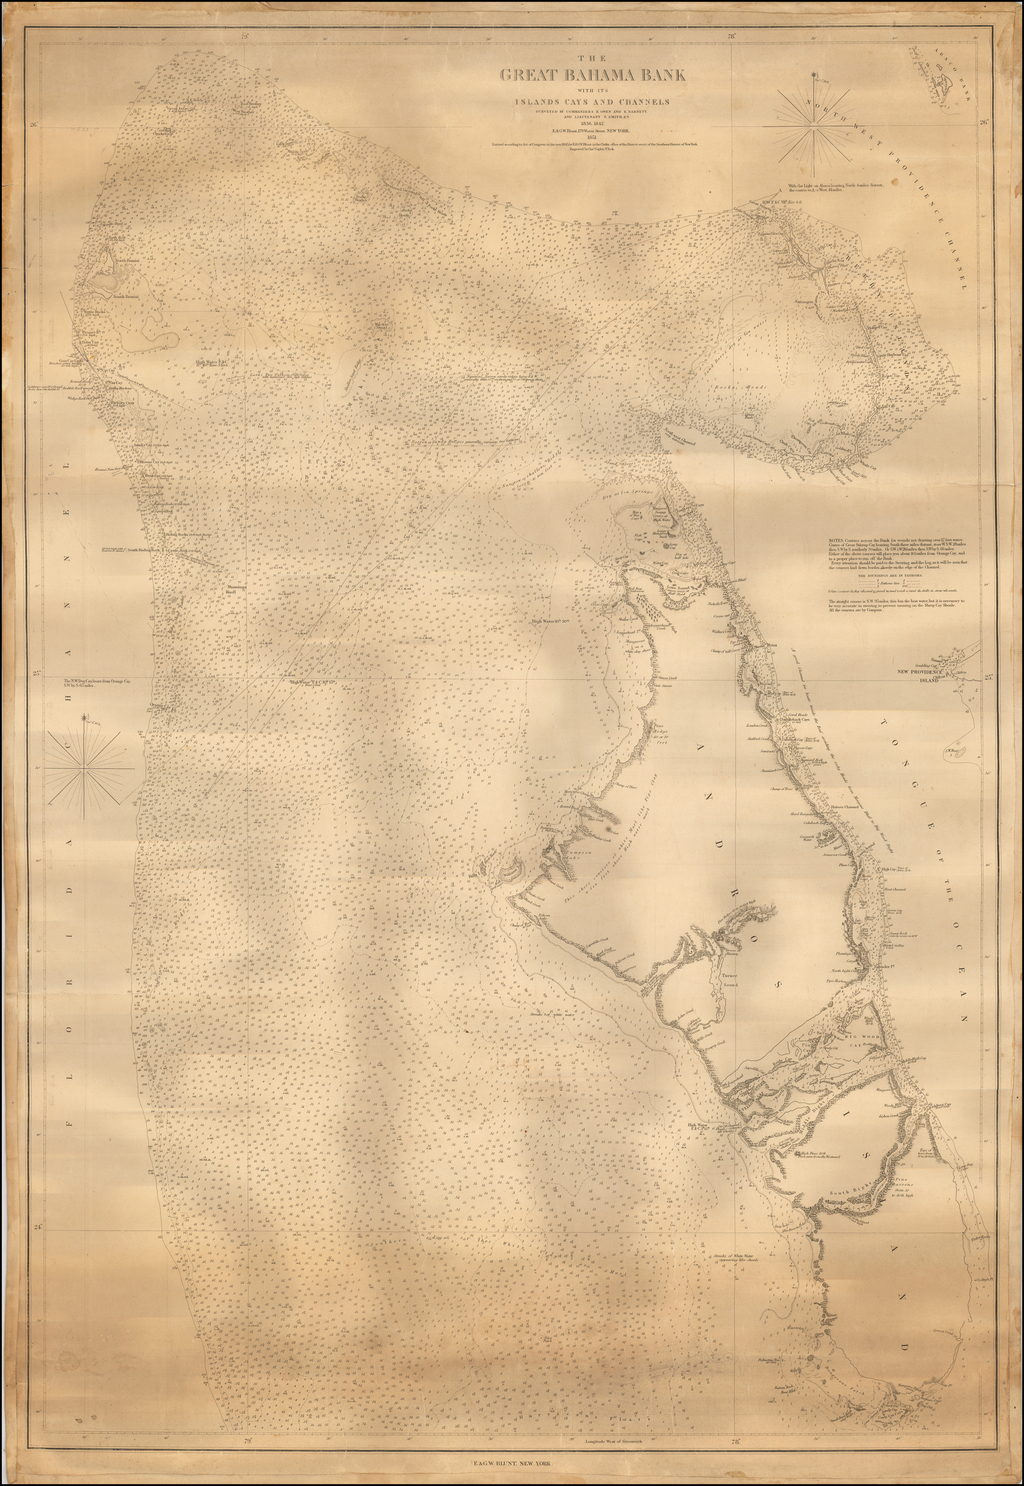 The Great Bahama Bank with its Islands Cays and Channels Surveyed By Commanders R. Owen and E. Barnett By E & GW Blunt